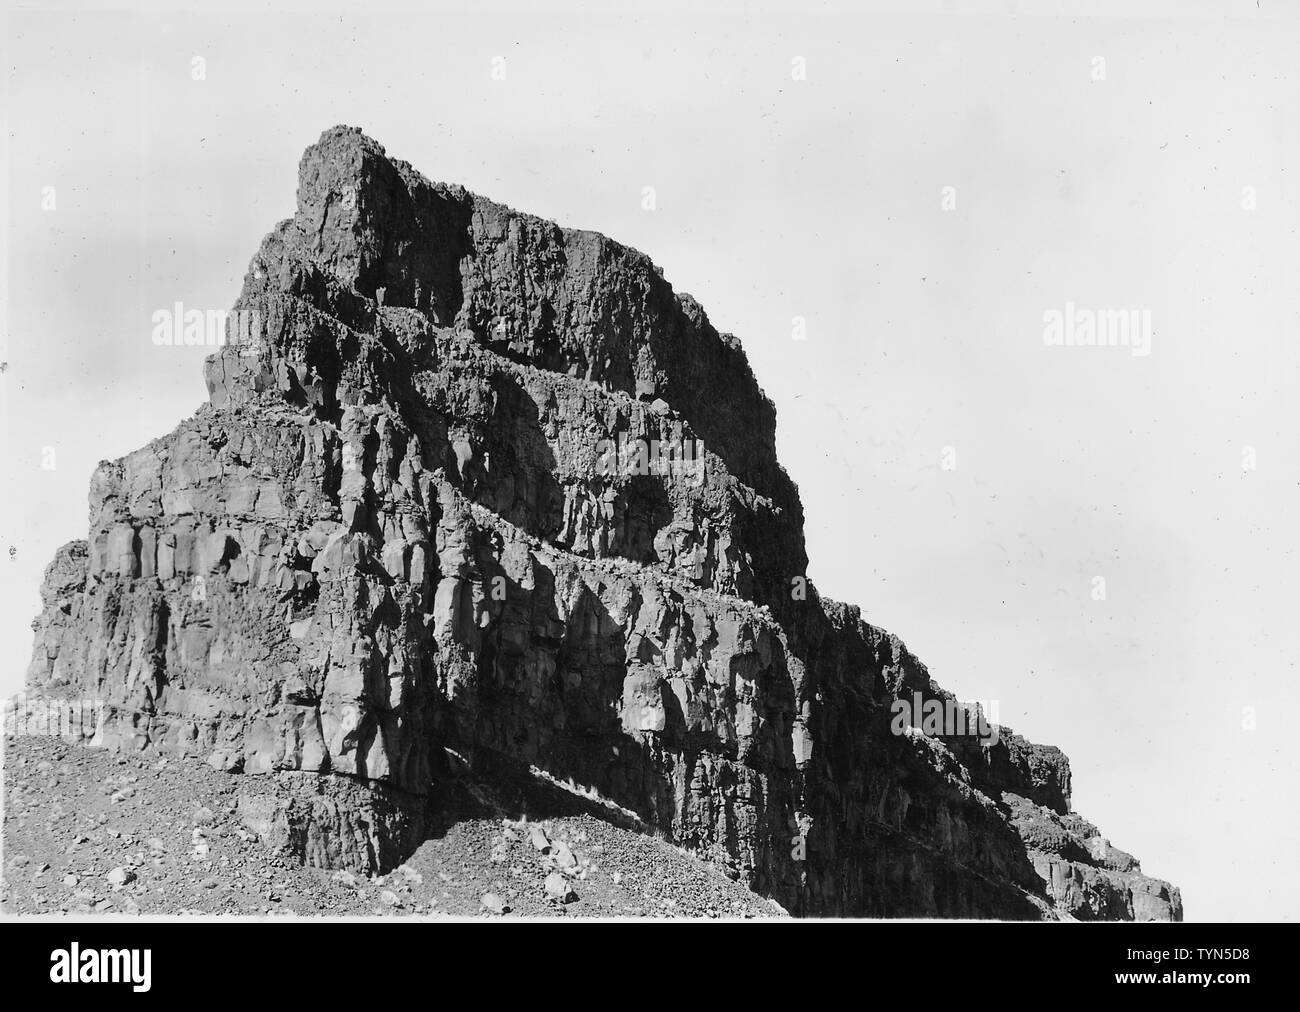 Typical rim-rock formation in Grand Coulee. Some 20 distinct lava flows are traceable in the cliffs of basalt which mark the gorge.; Scope and content:  Photograph from Volume Two of a series of photo albums documenting the construction of the Grand Coulee Dam and related work on the Columbia Basin Project. Stock Photo